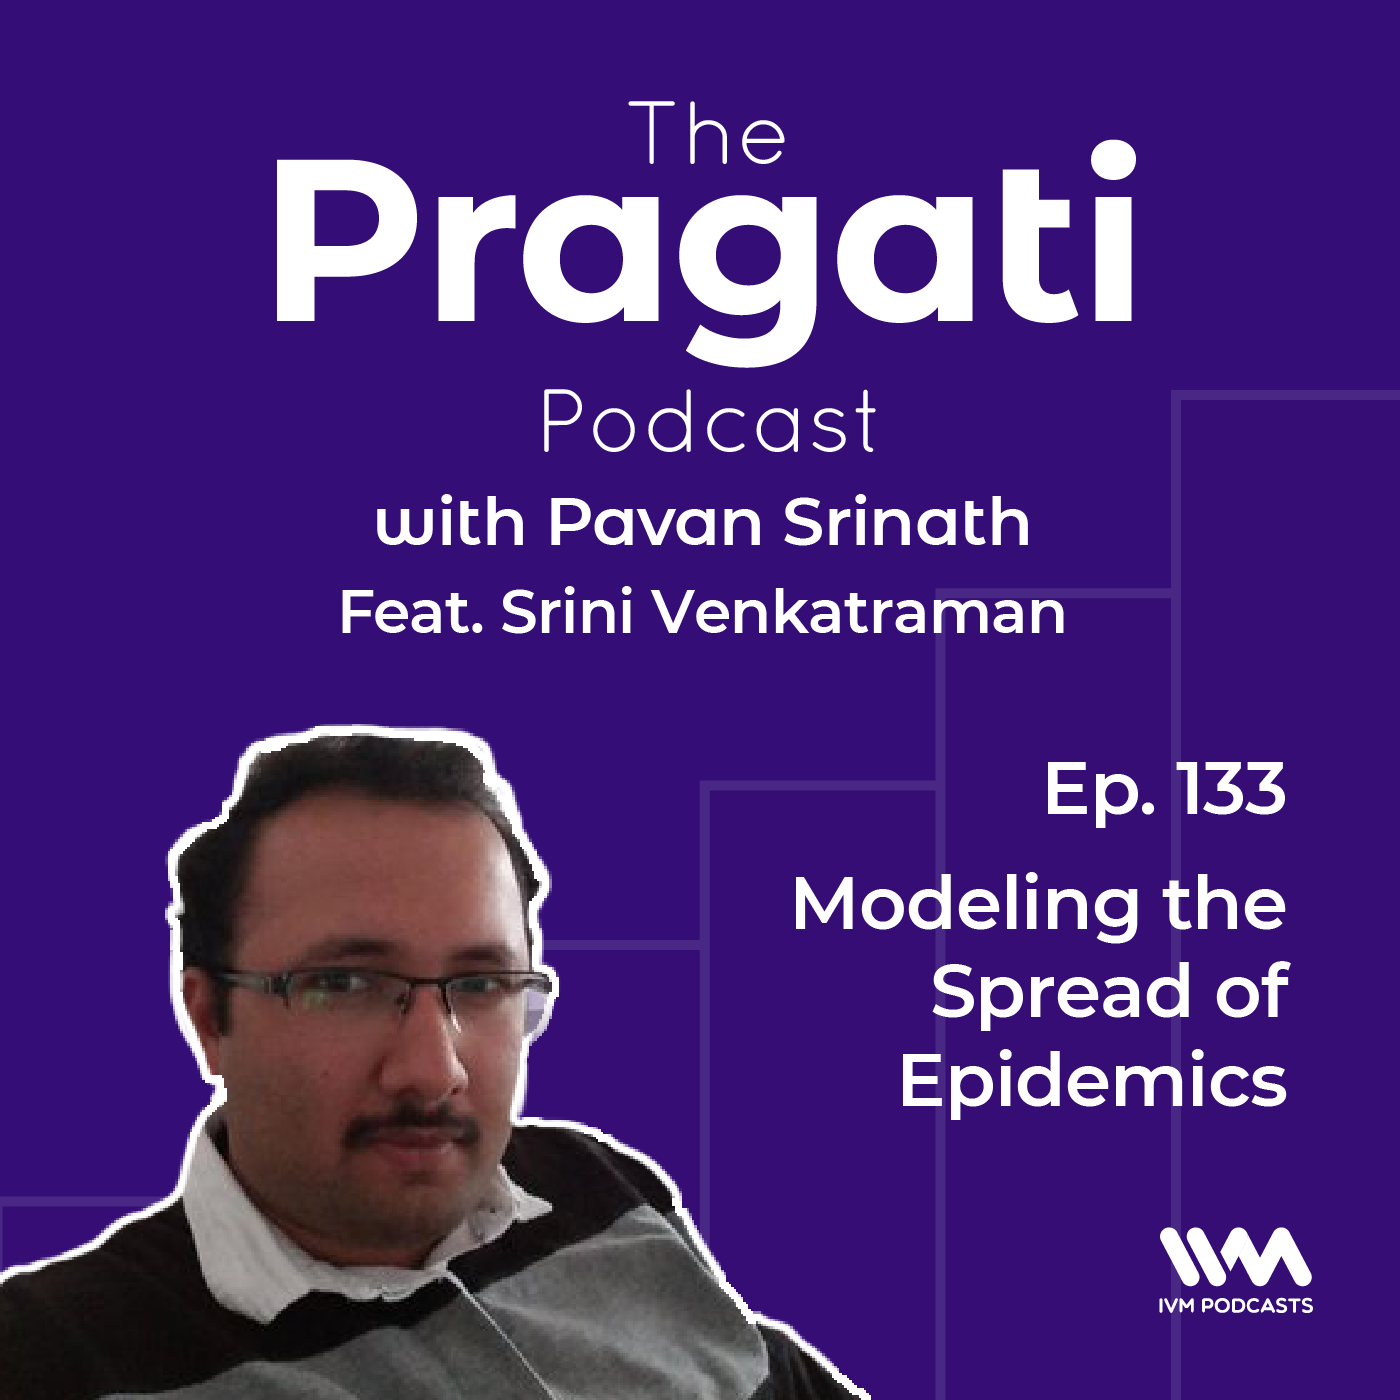 Ep. 133: Modeling the Spread of Epidemics